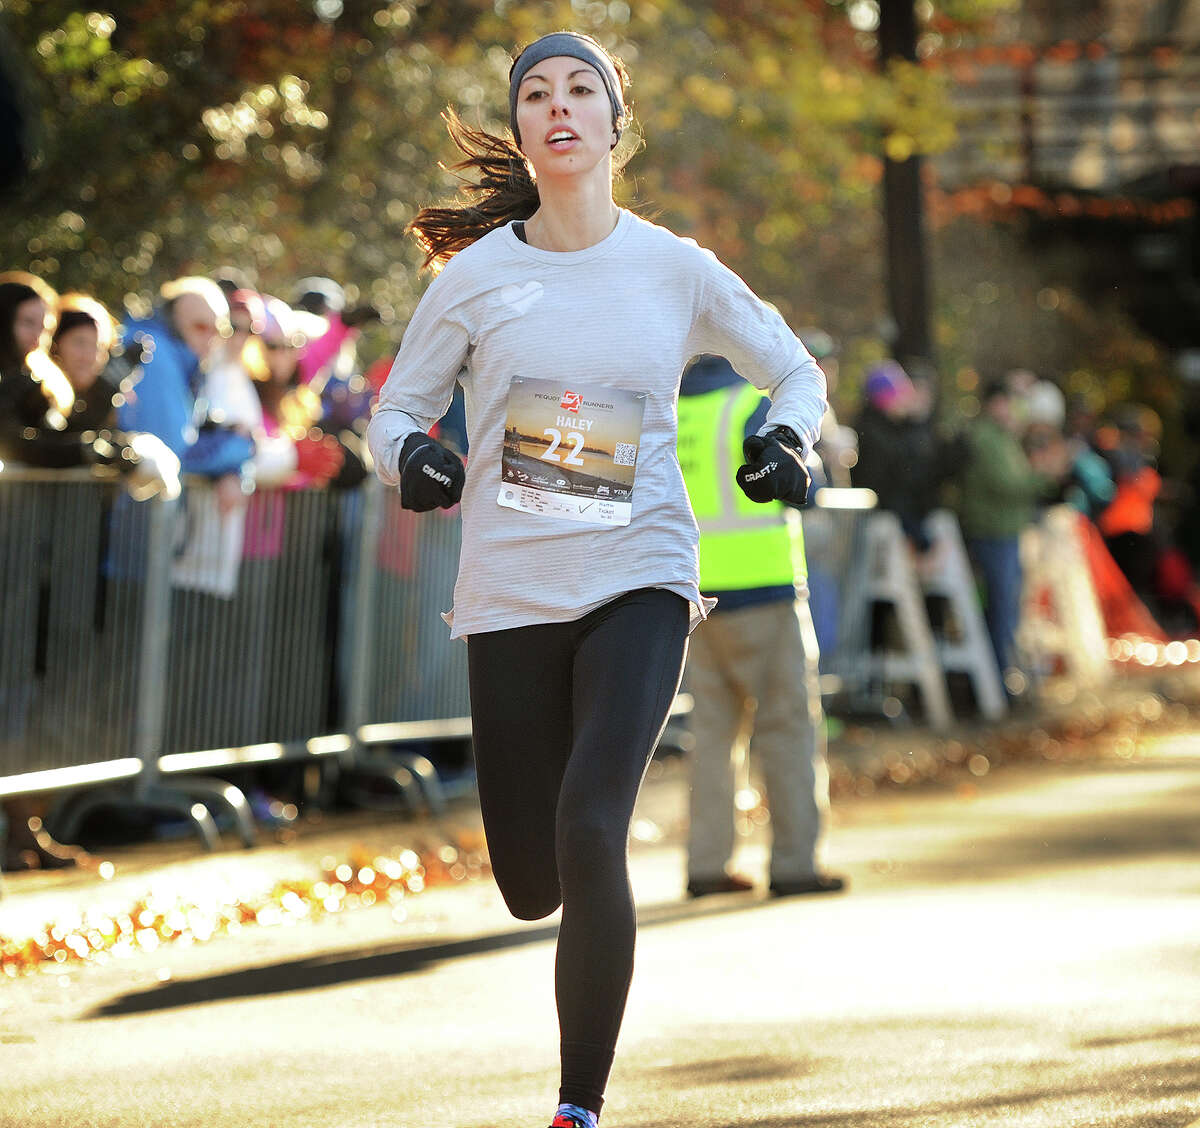 Haley Abing, of Boston, crosses the finish line as the women's winner of the annual Pequot Runners 5-mile Thanksgiving Day Road Race in Fairfield, Conn. on Thursday, November 23, 2017. Over 4000 runners registered for this year's race.